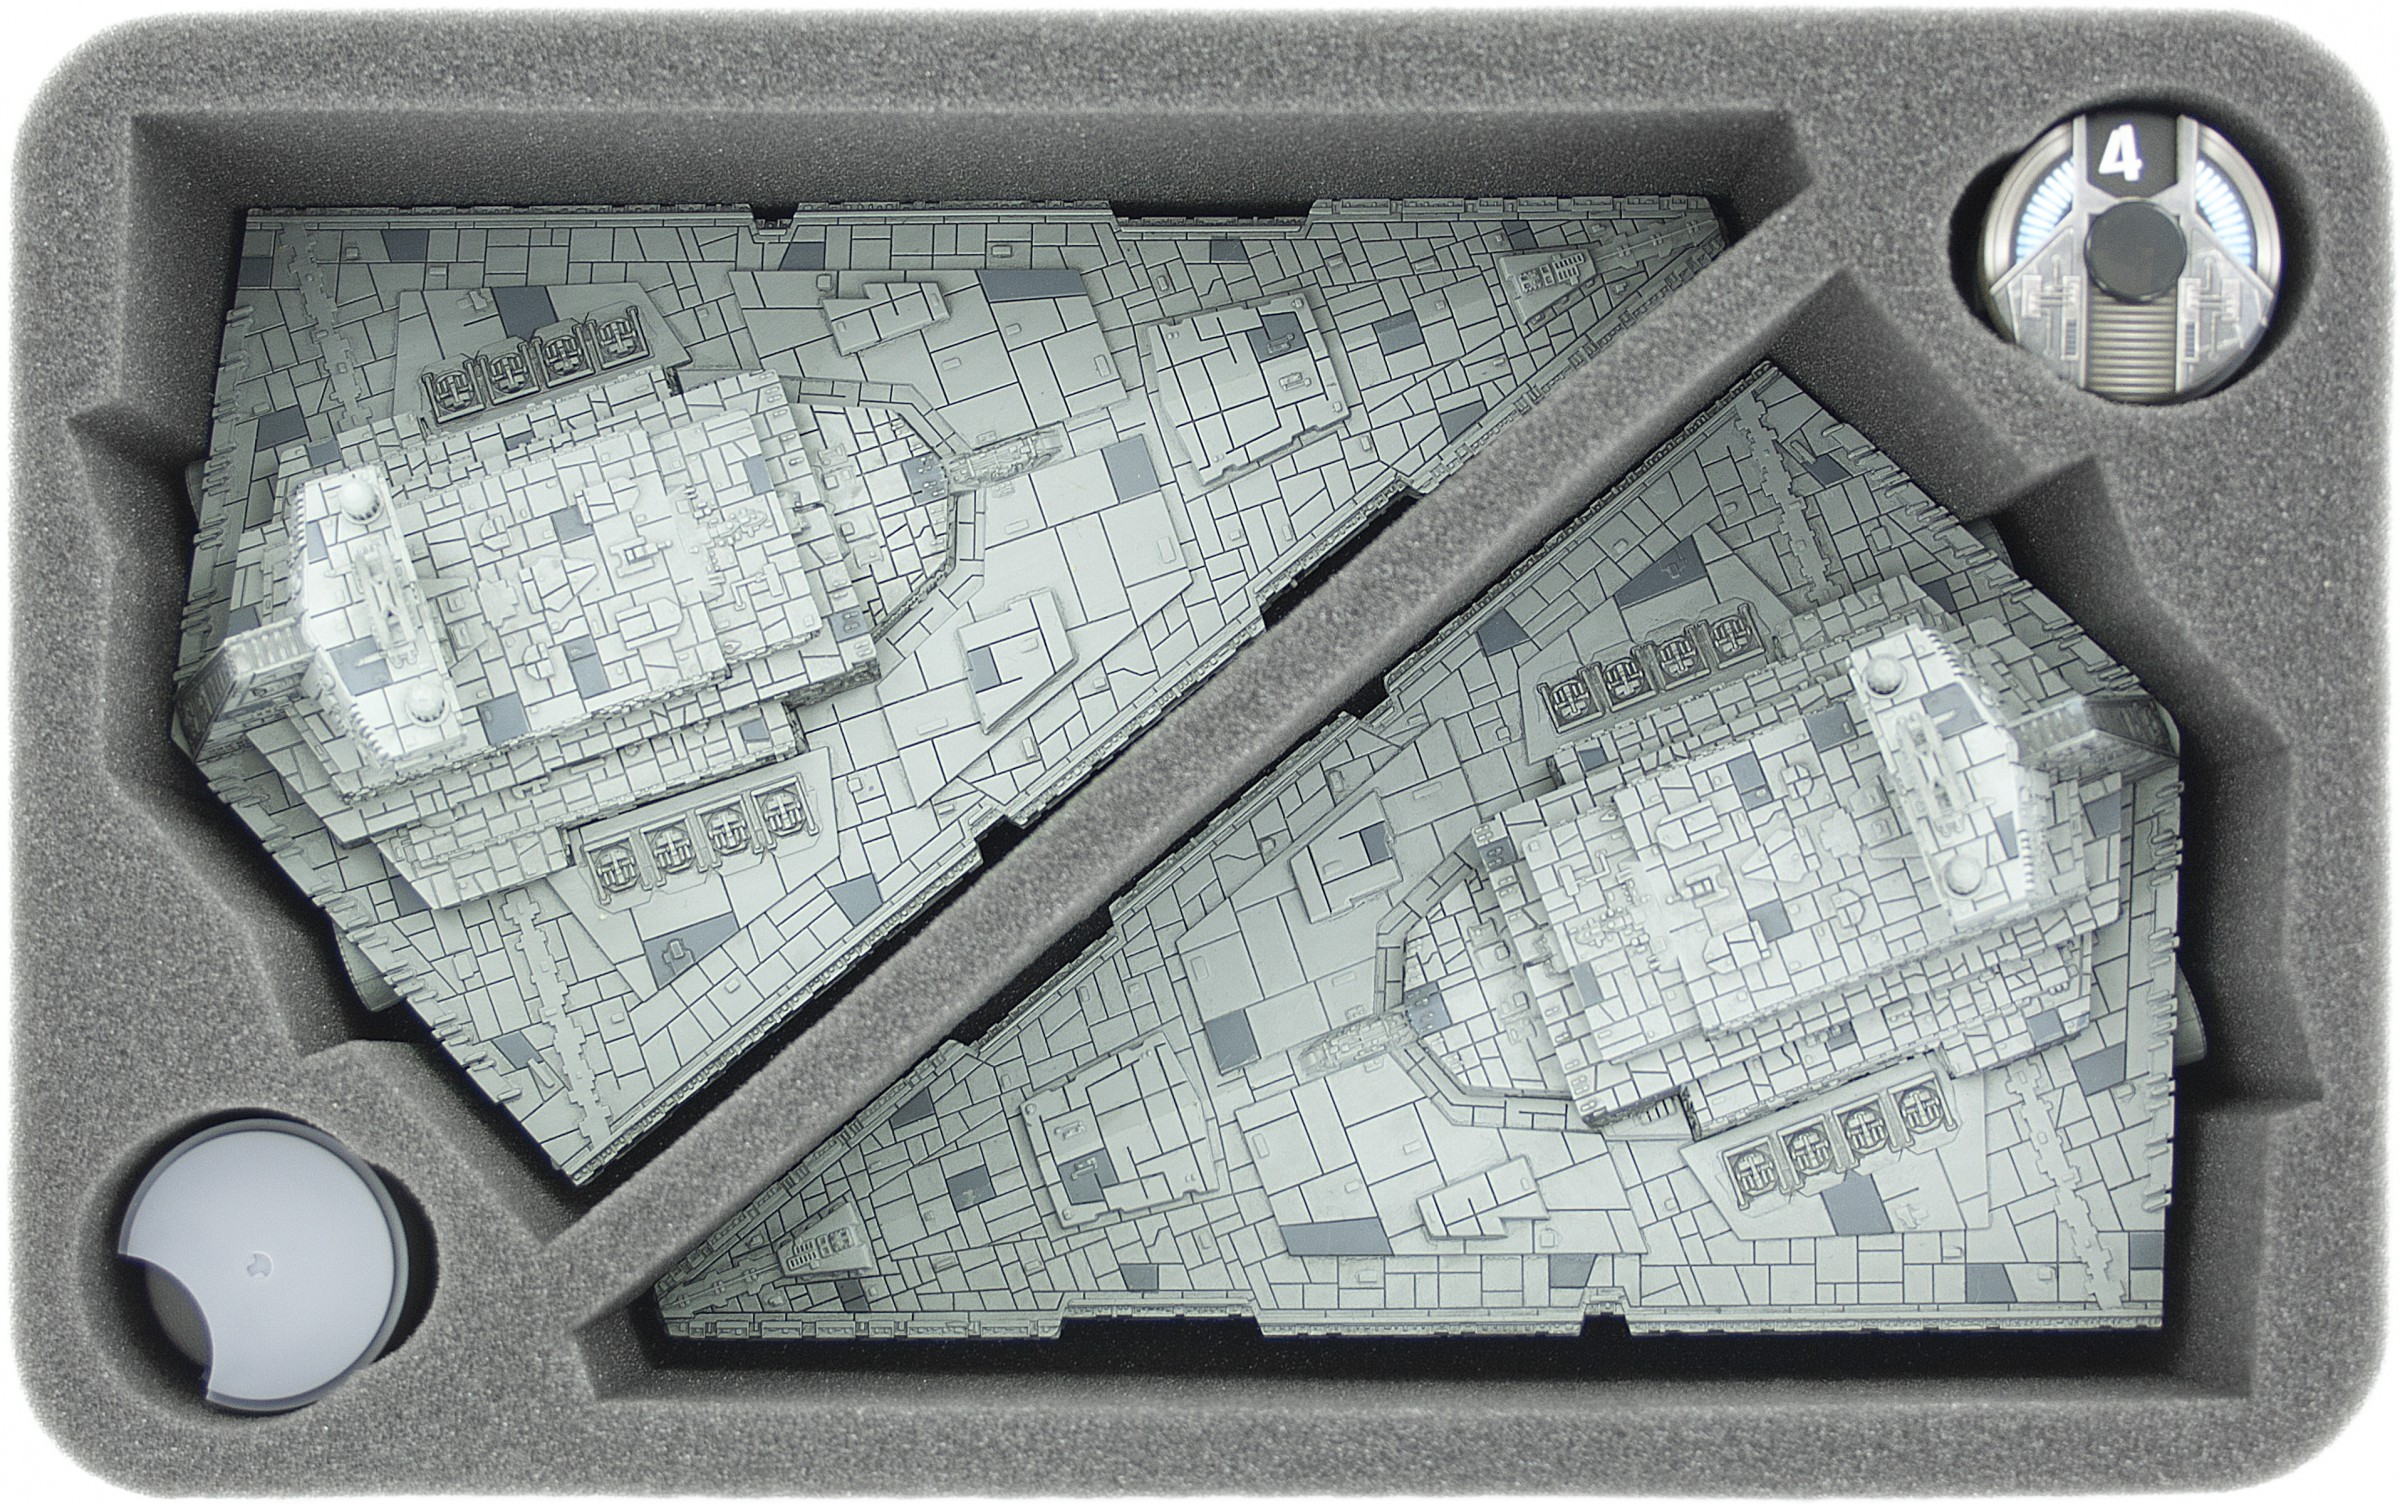 HSDQ075BO Foam Tray For Star Wars Armada Wave 2 Imperial Class Star  Destroyer Or Wave 7 Chimaera